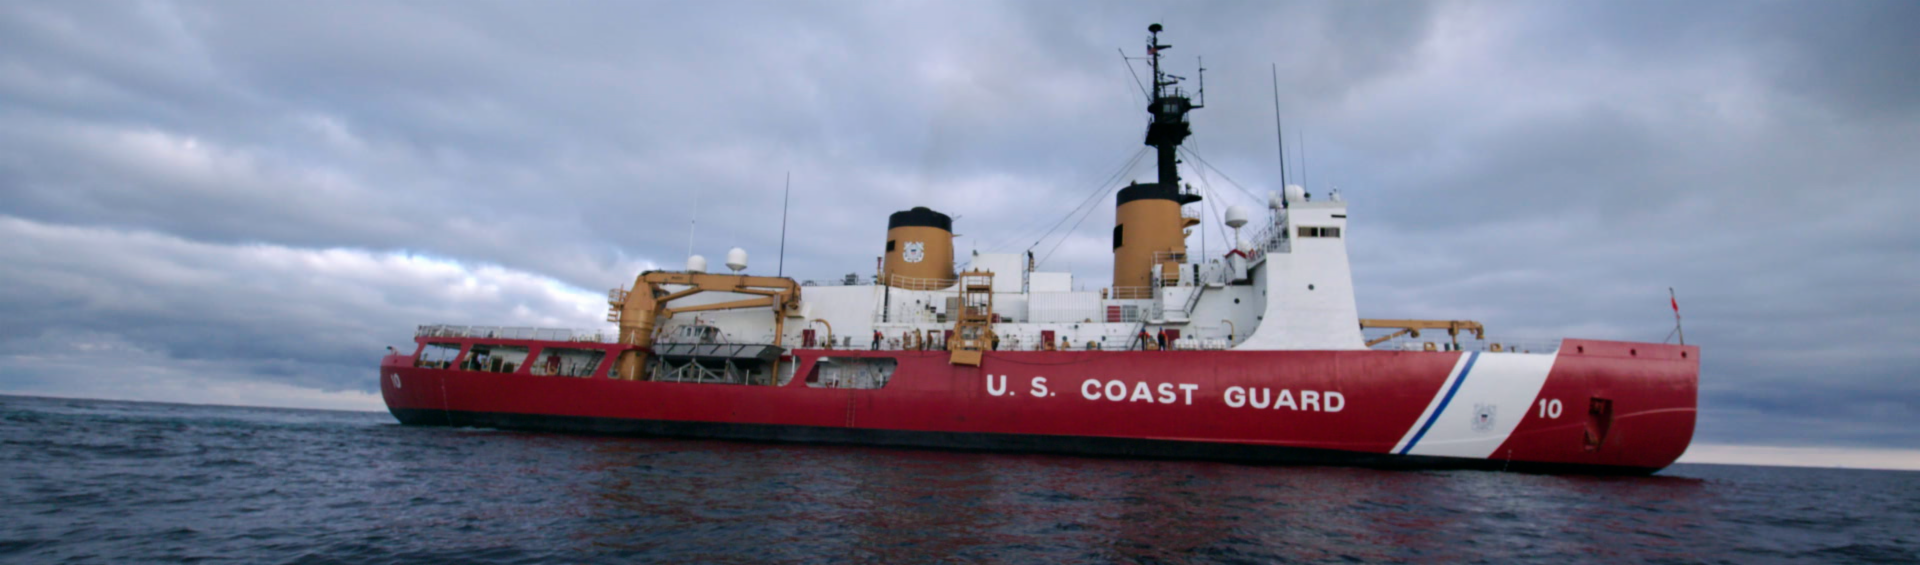 red and white US Coast Guard ship